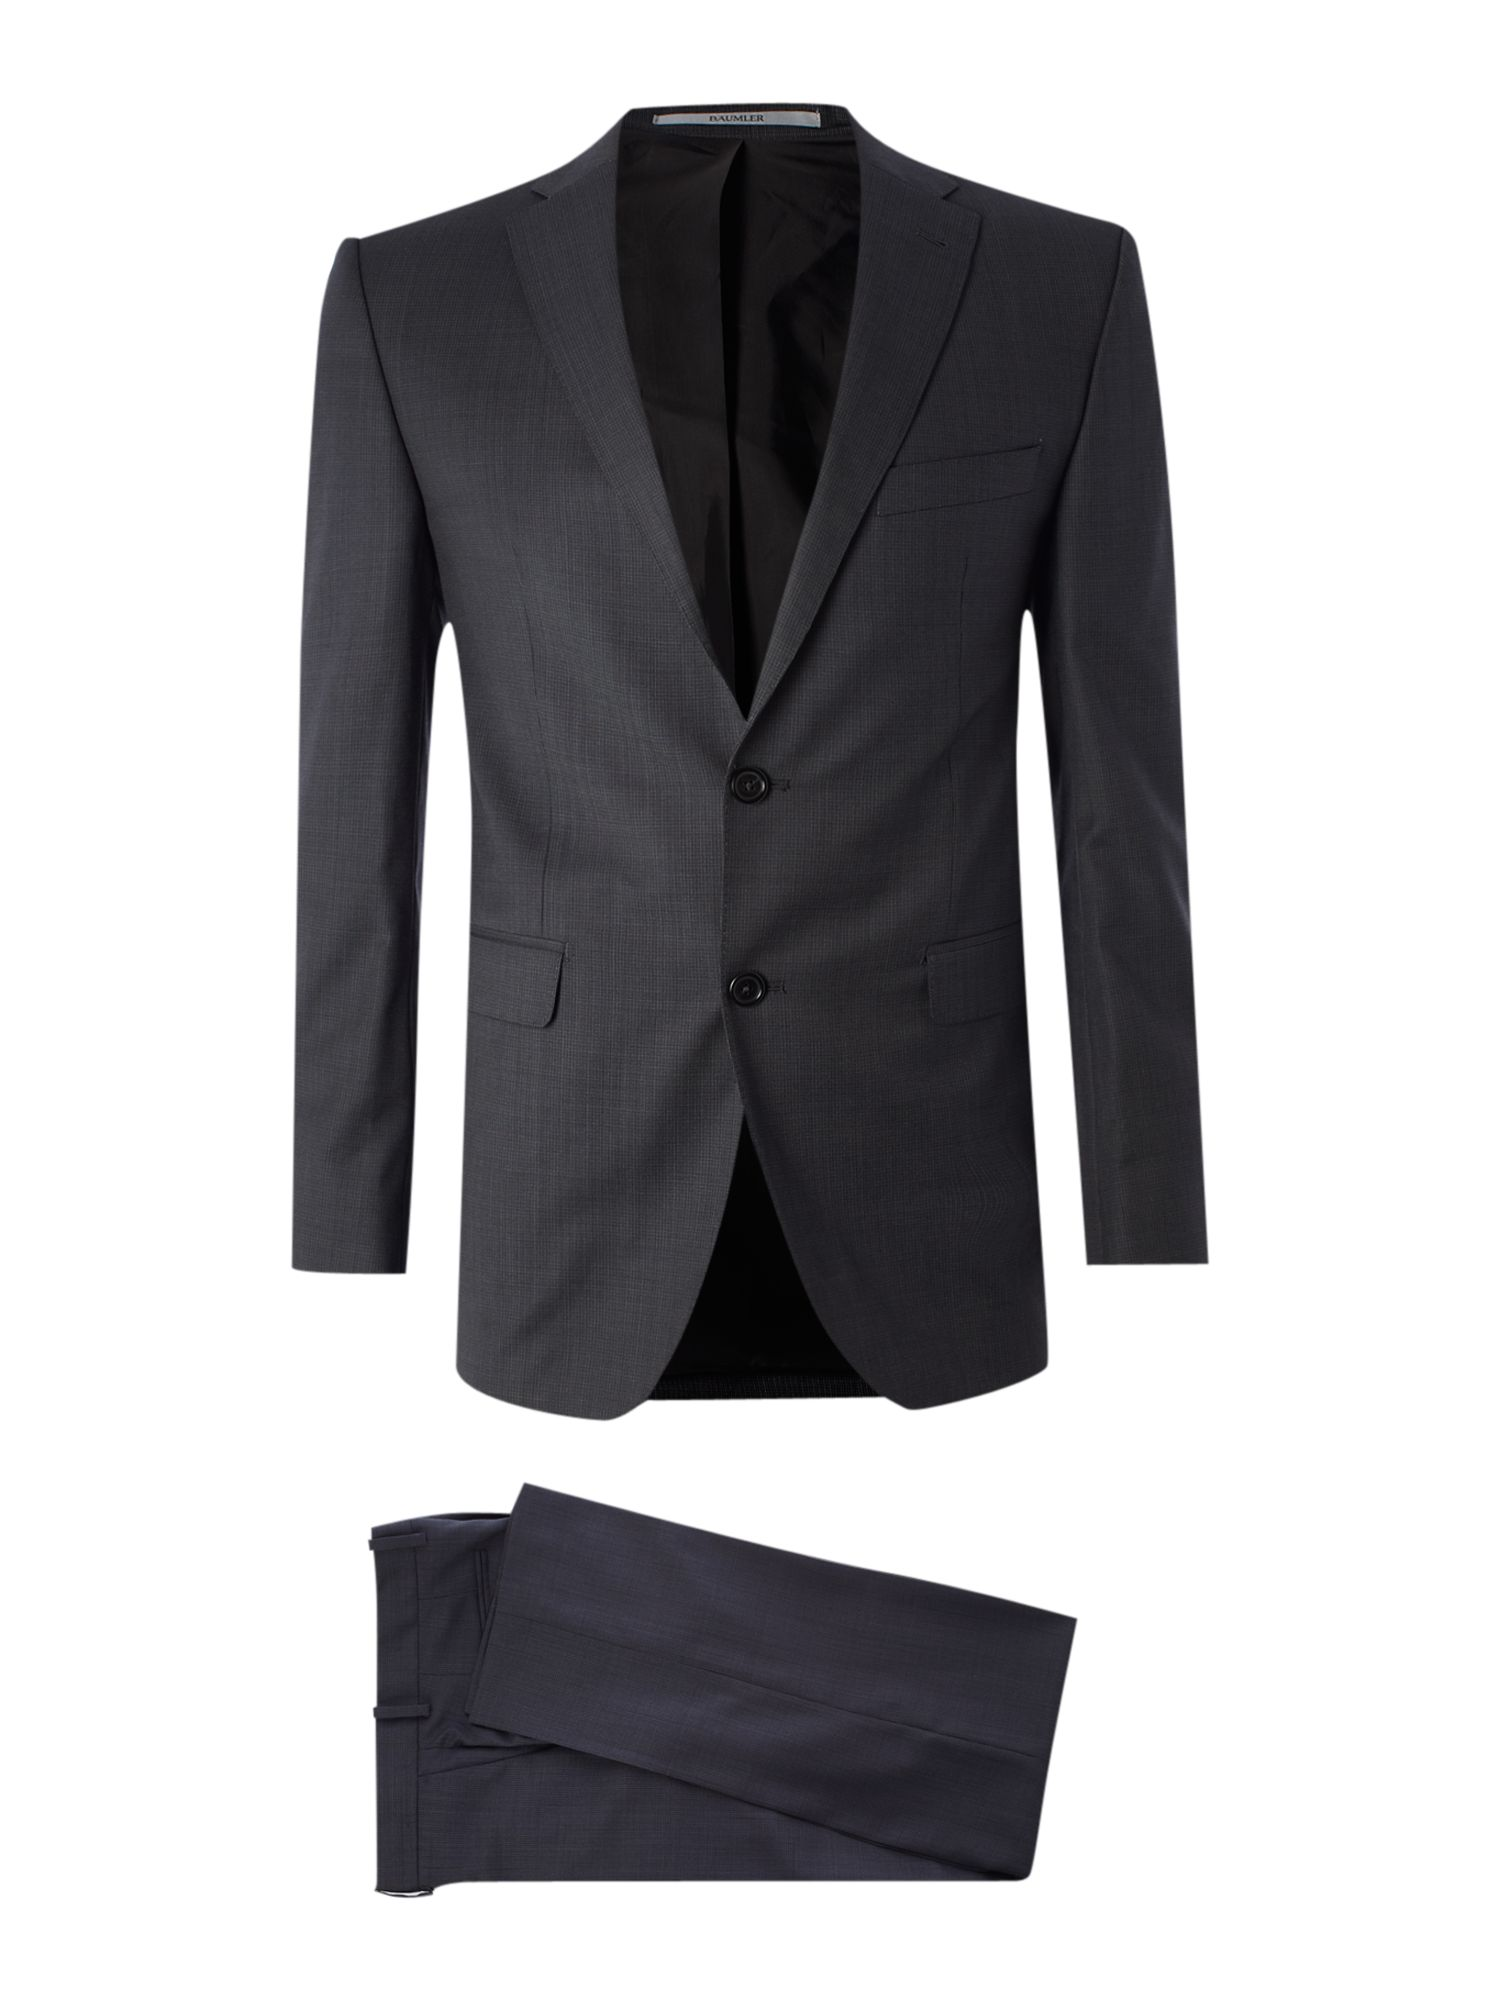 Single breasted micro check formal suit